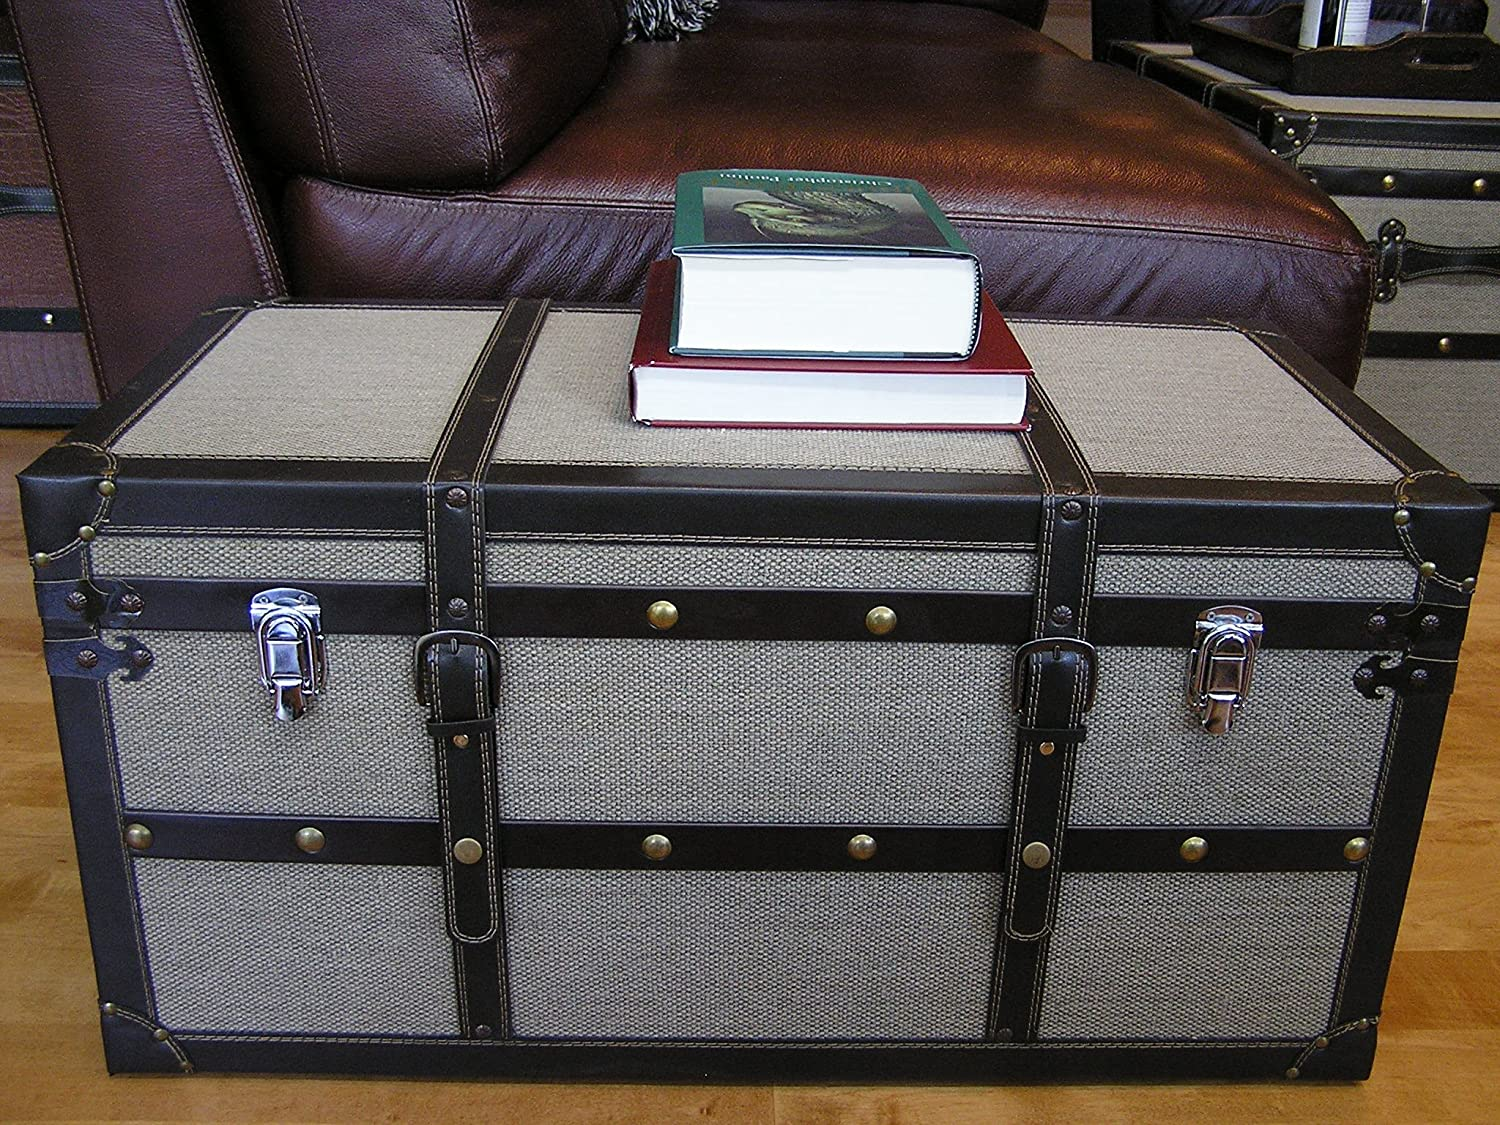 Amazon.com: Decorative Vienna Large Wood Steamer Trunk Wooden Treasure Hope  Chest: Kitchen U0026 Dining